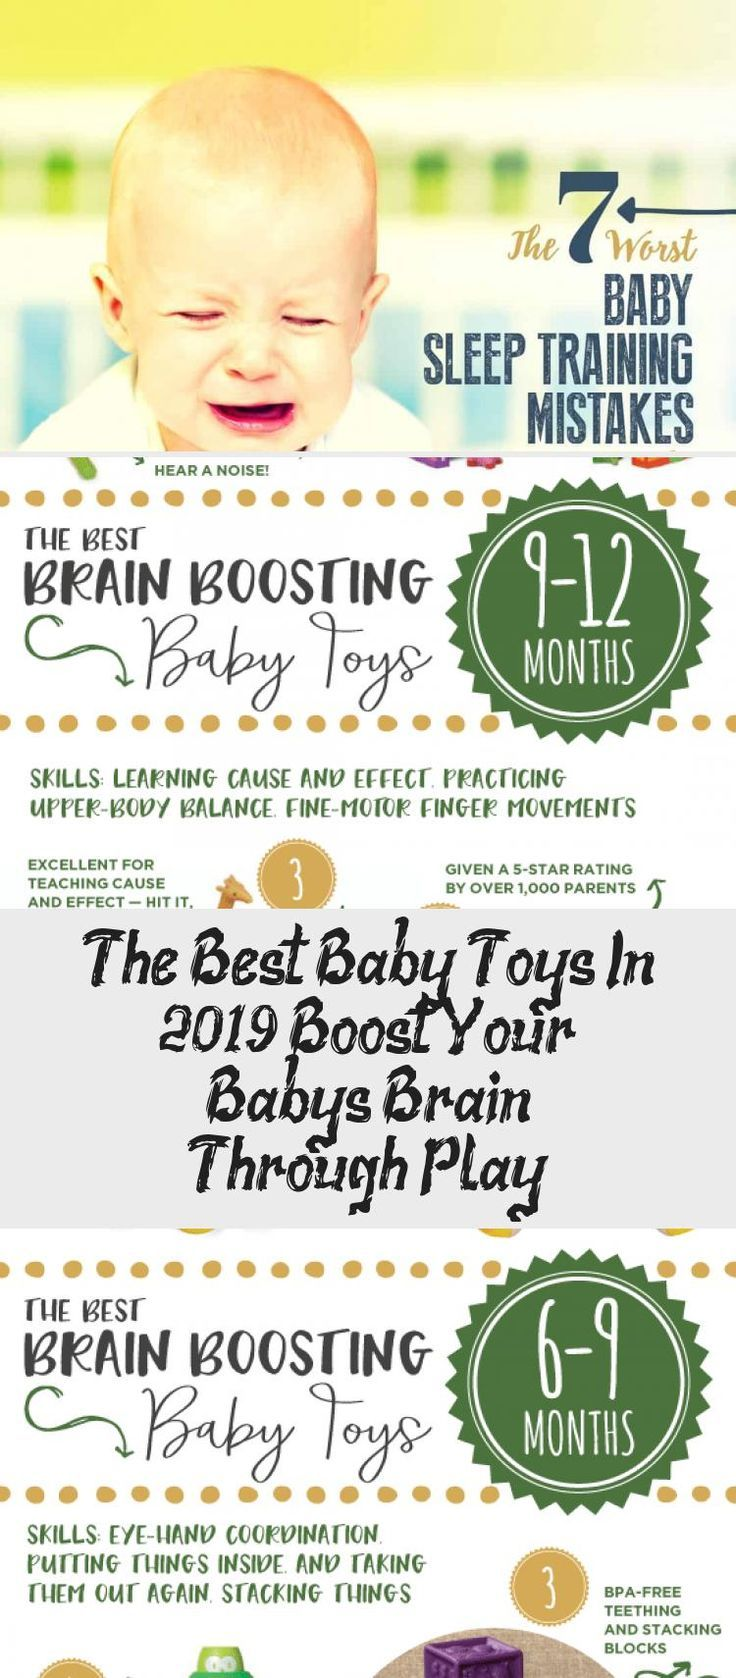 69 Months The Best BrainBoosting Baby Toys A Buying Guide for Smart Parents  ub